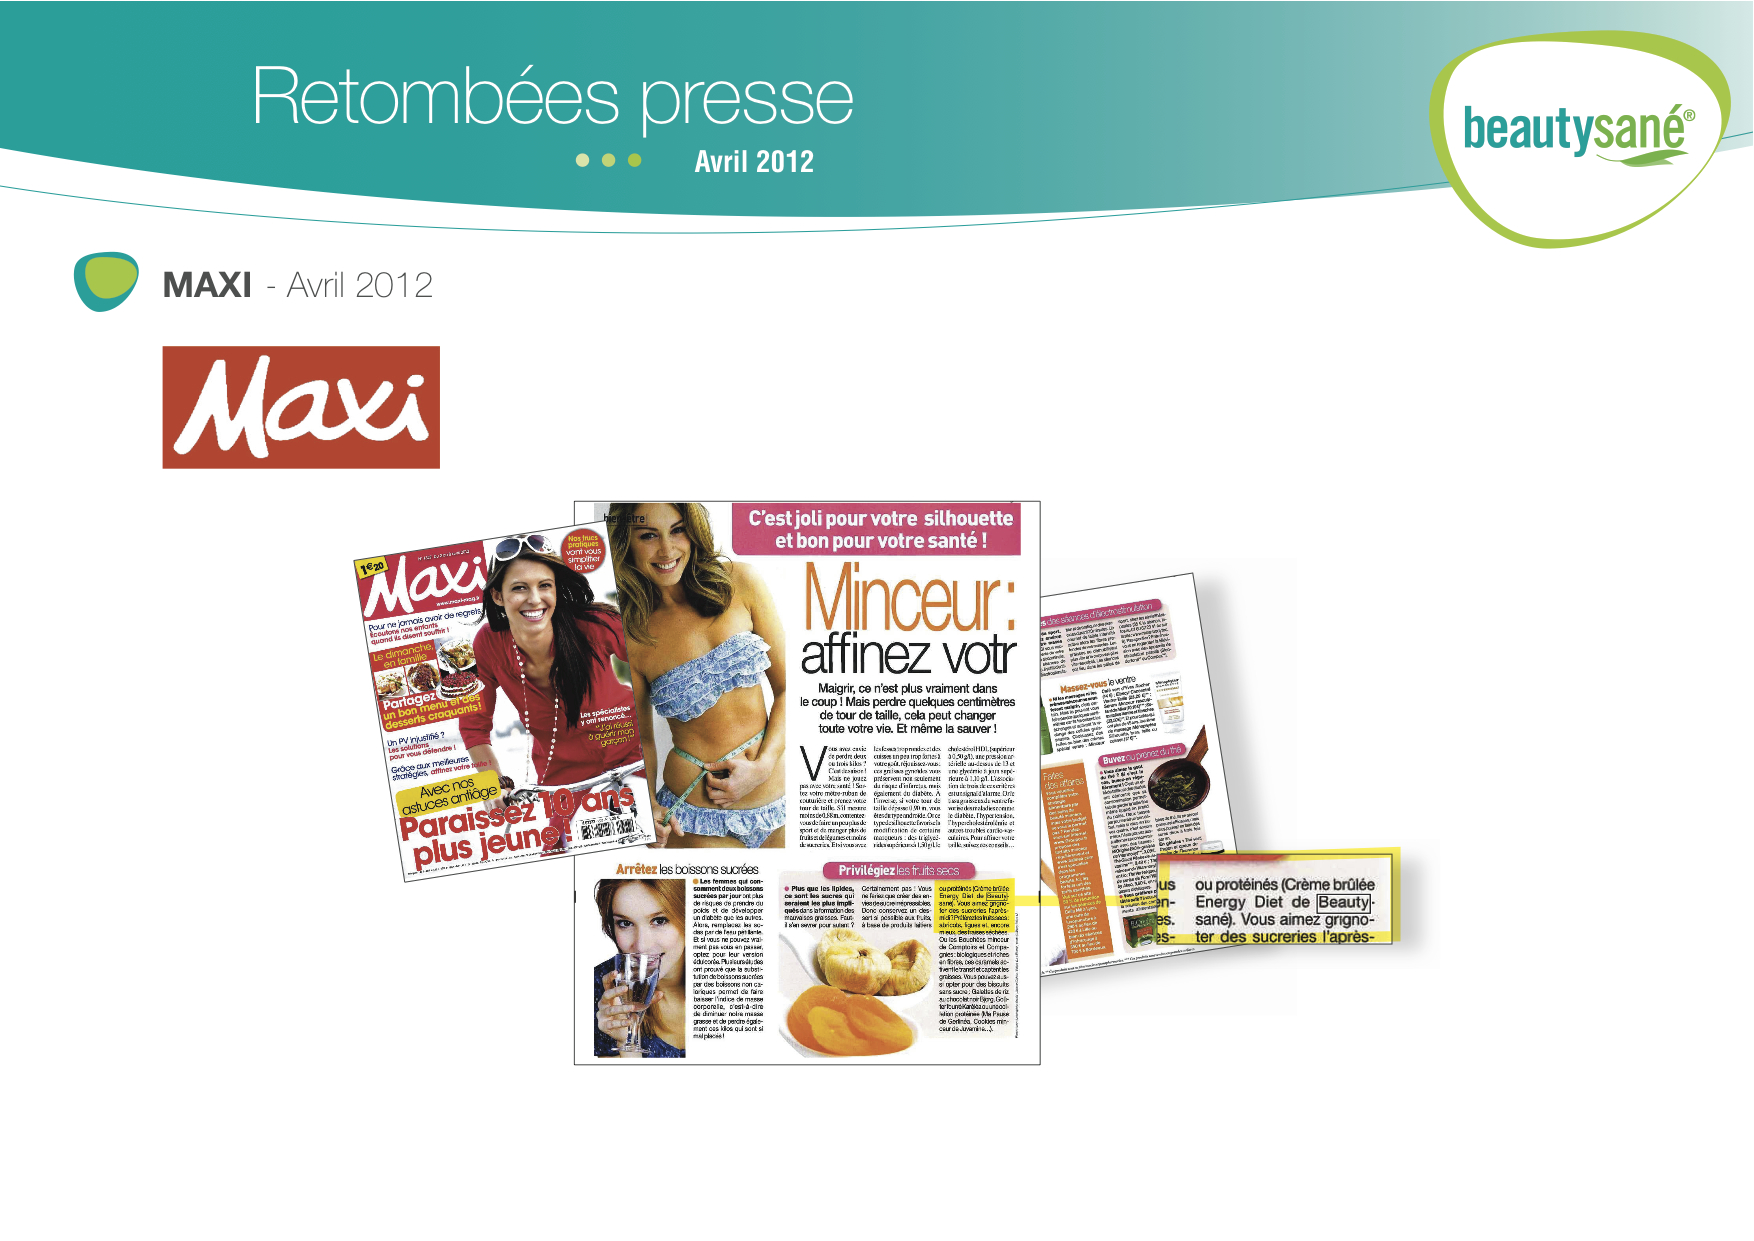 rp_bs-avril2012-maxi